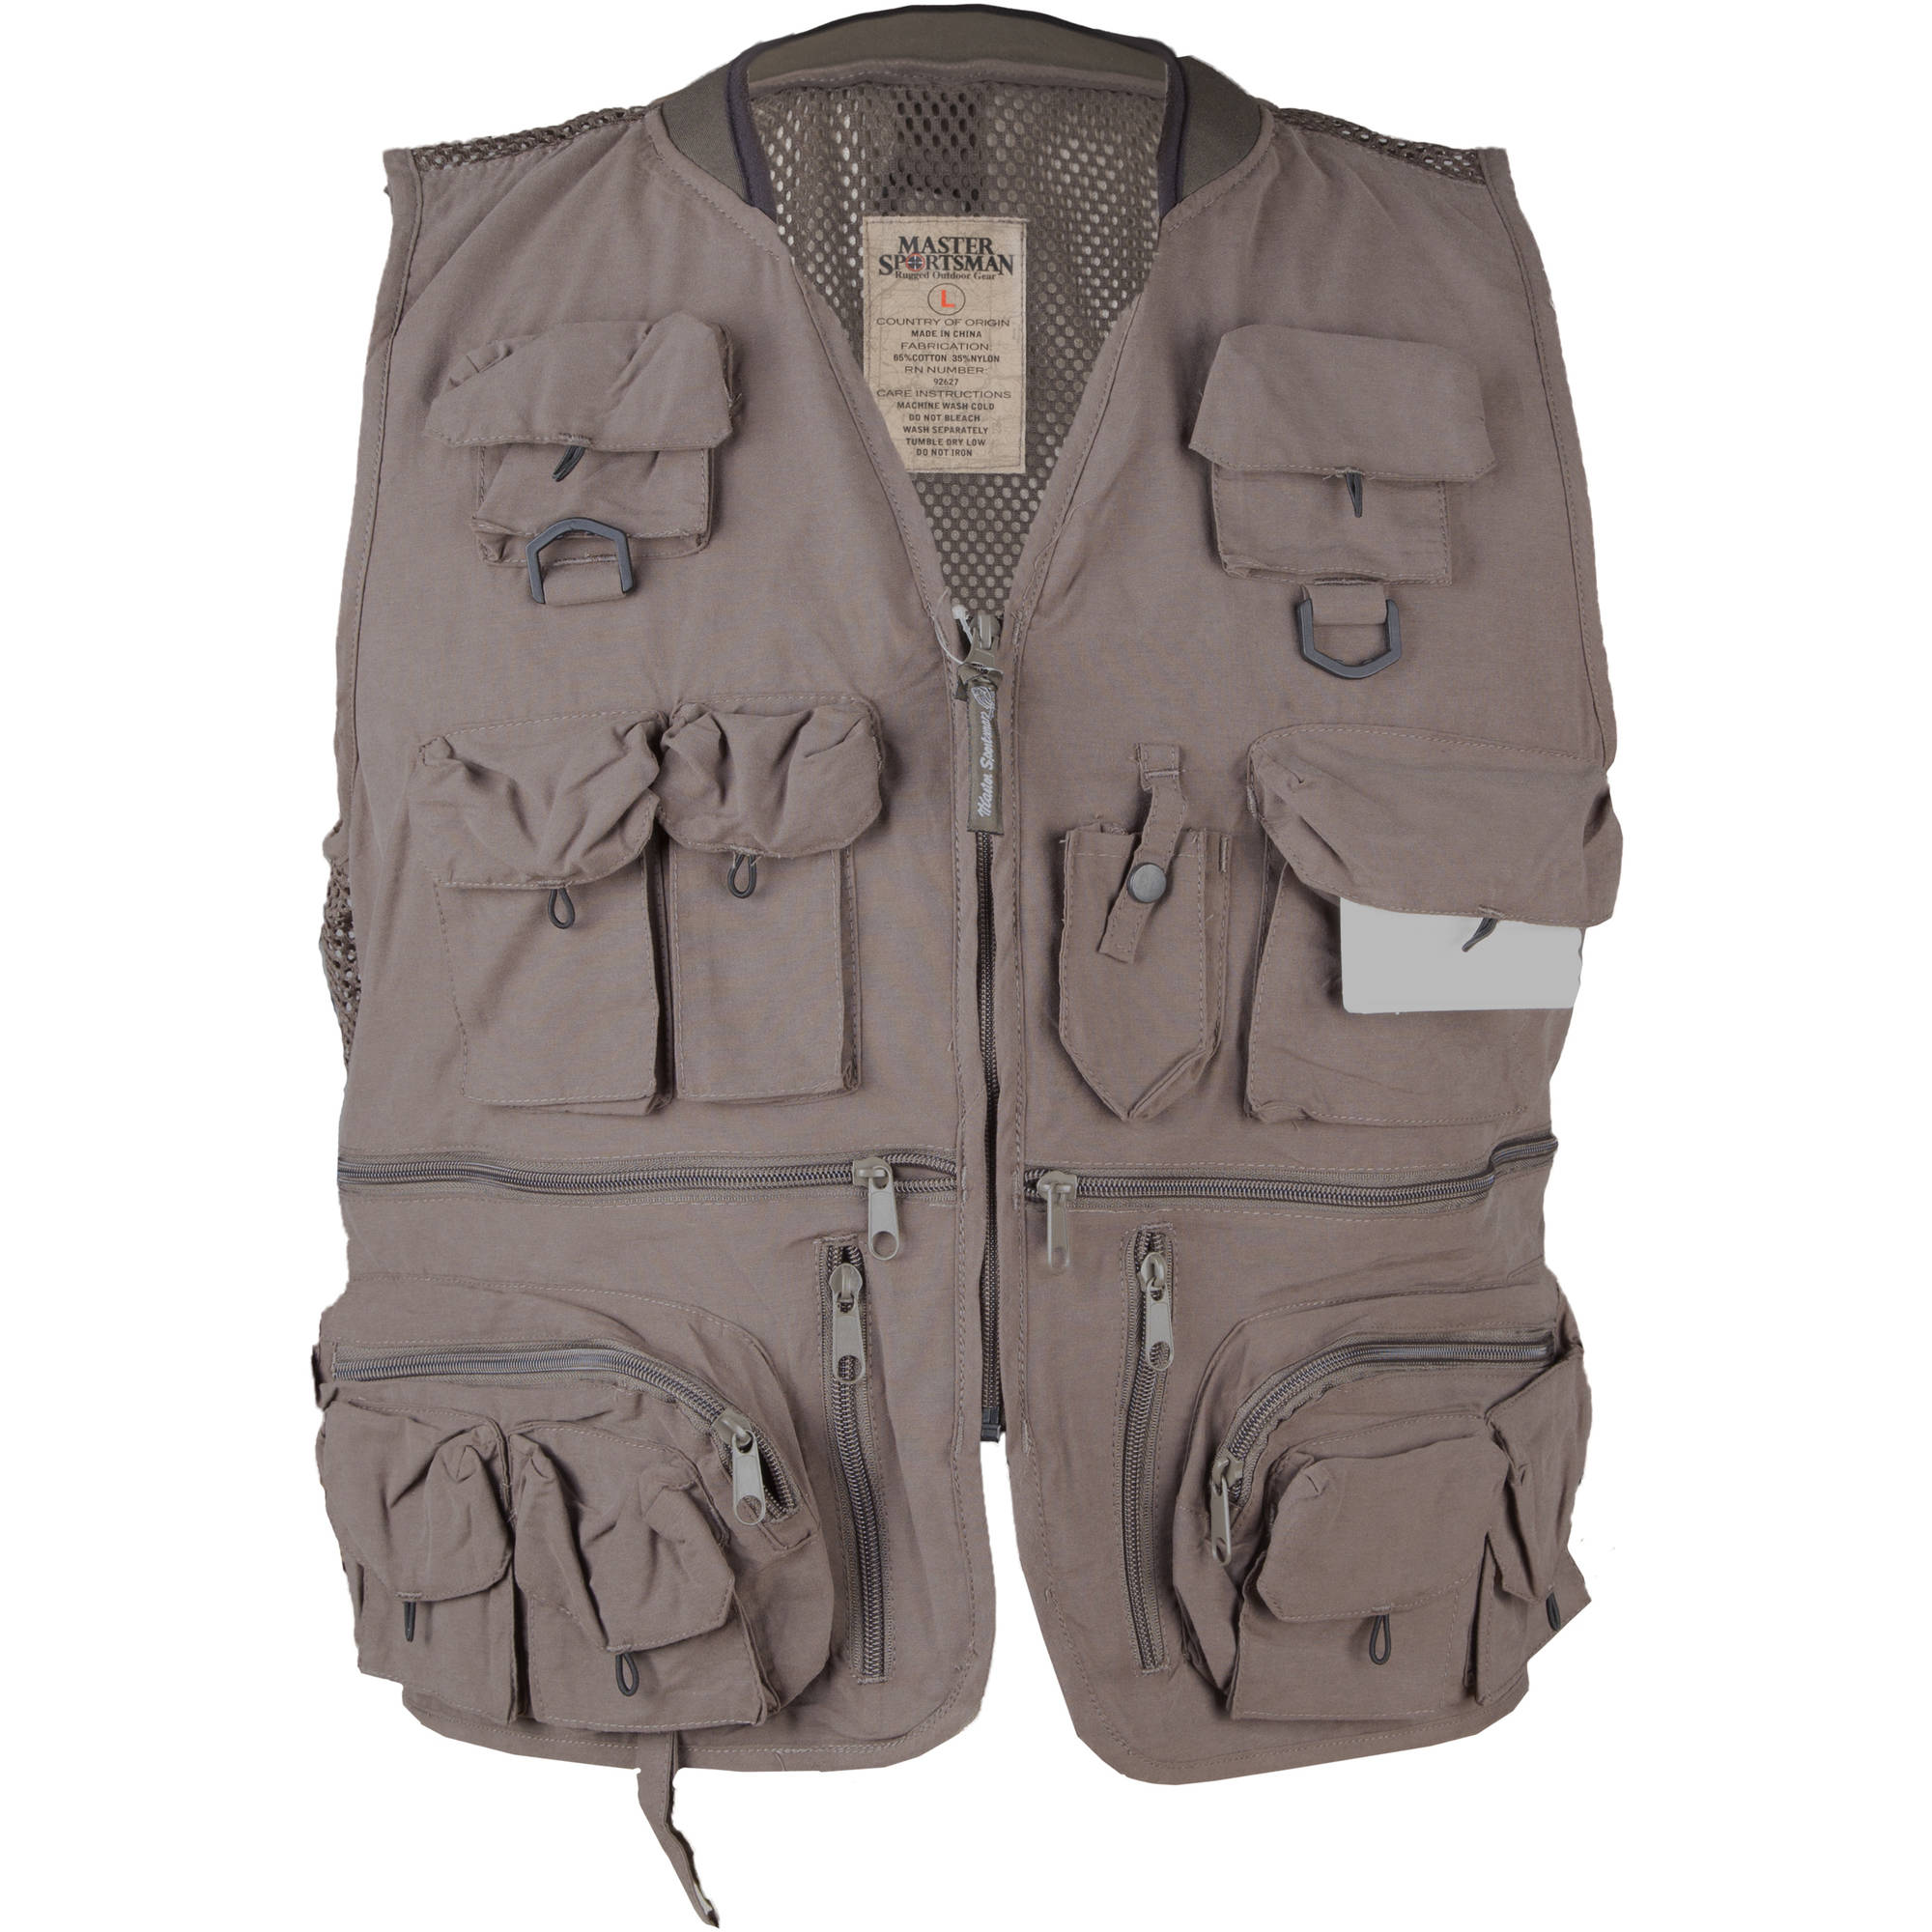 Master Sportsman Alpine 27-Pocket Mesh-Back Fishing Vest, Olive, XL by EXXEL OUTDOORS, LLC